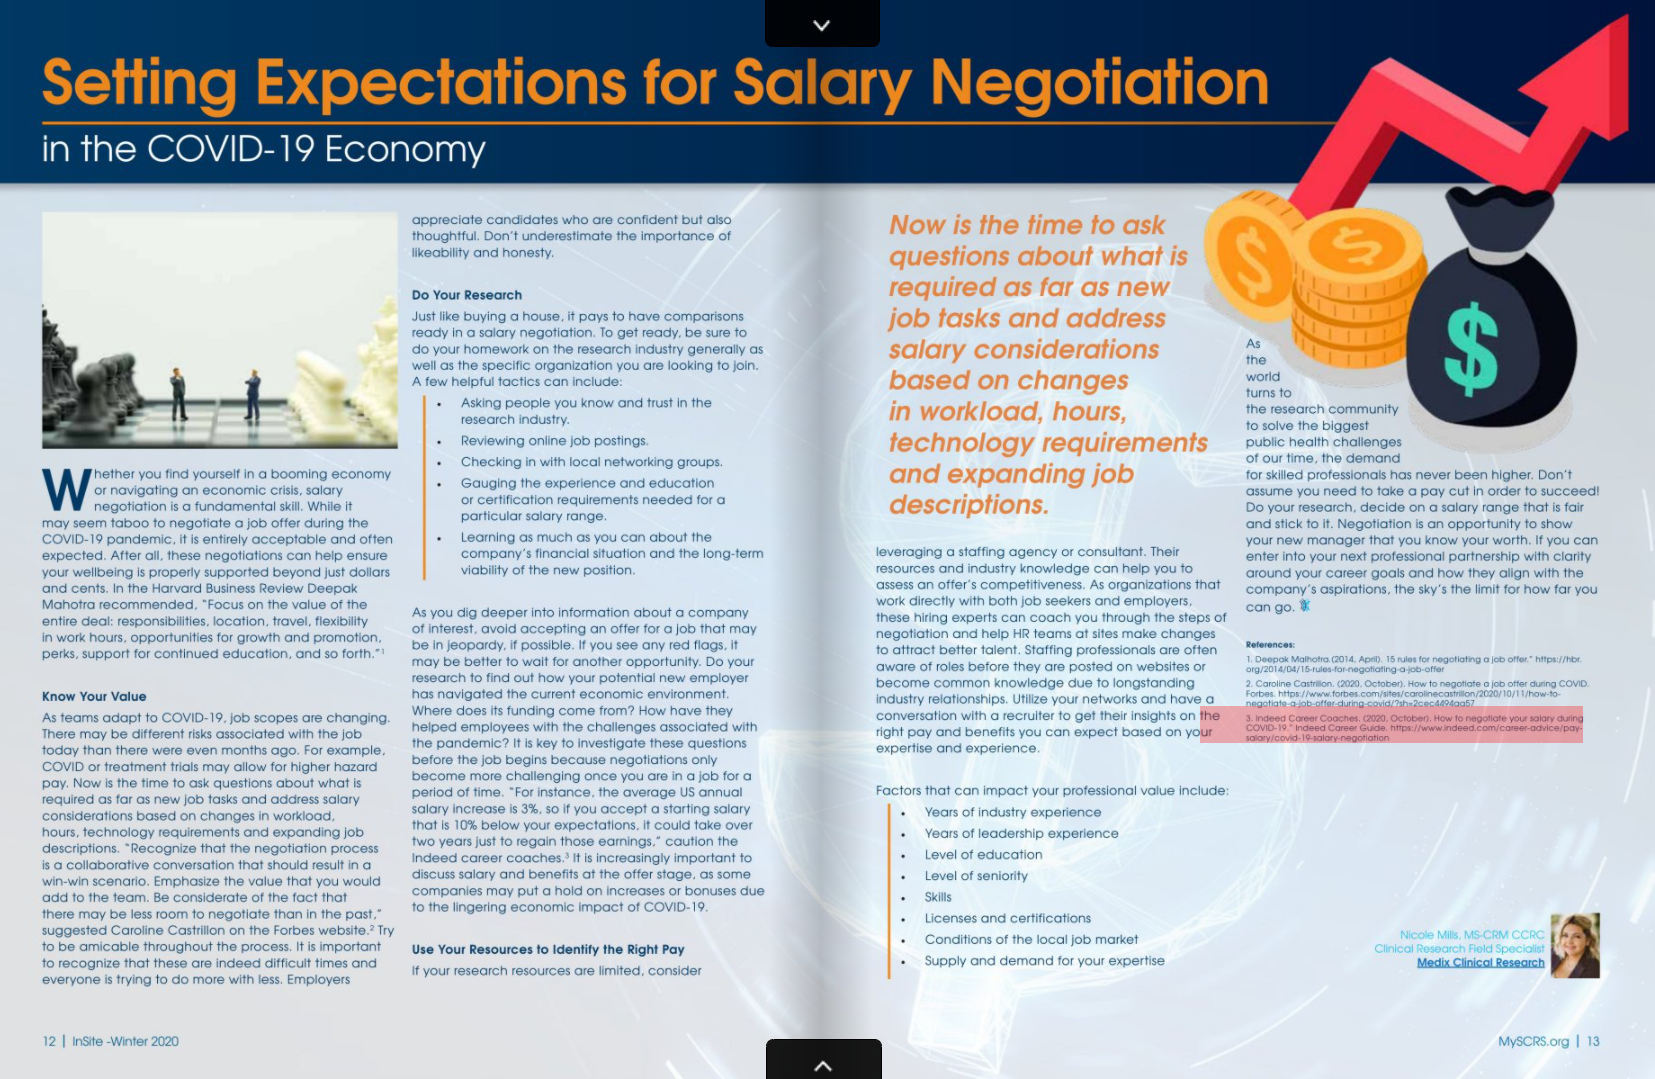 Setting Expectations for Salary Negotiation in the COVID-19 Economy Medix SCRS Insite December 2020